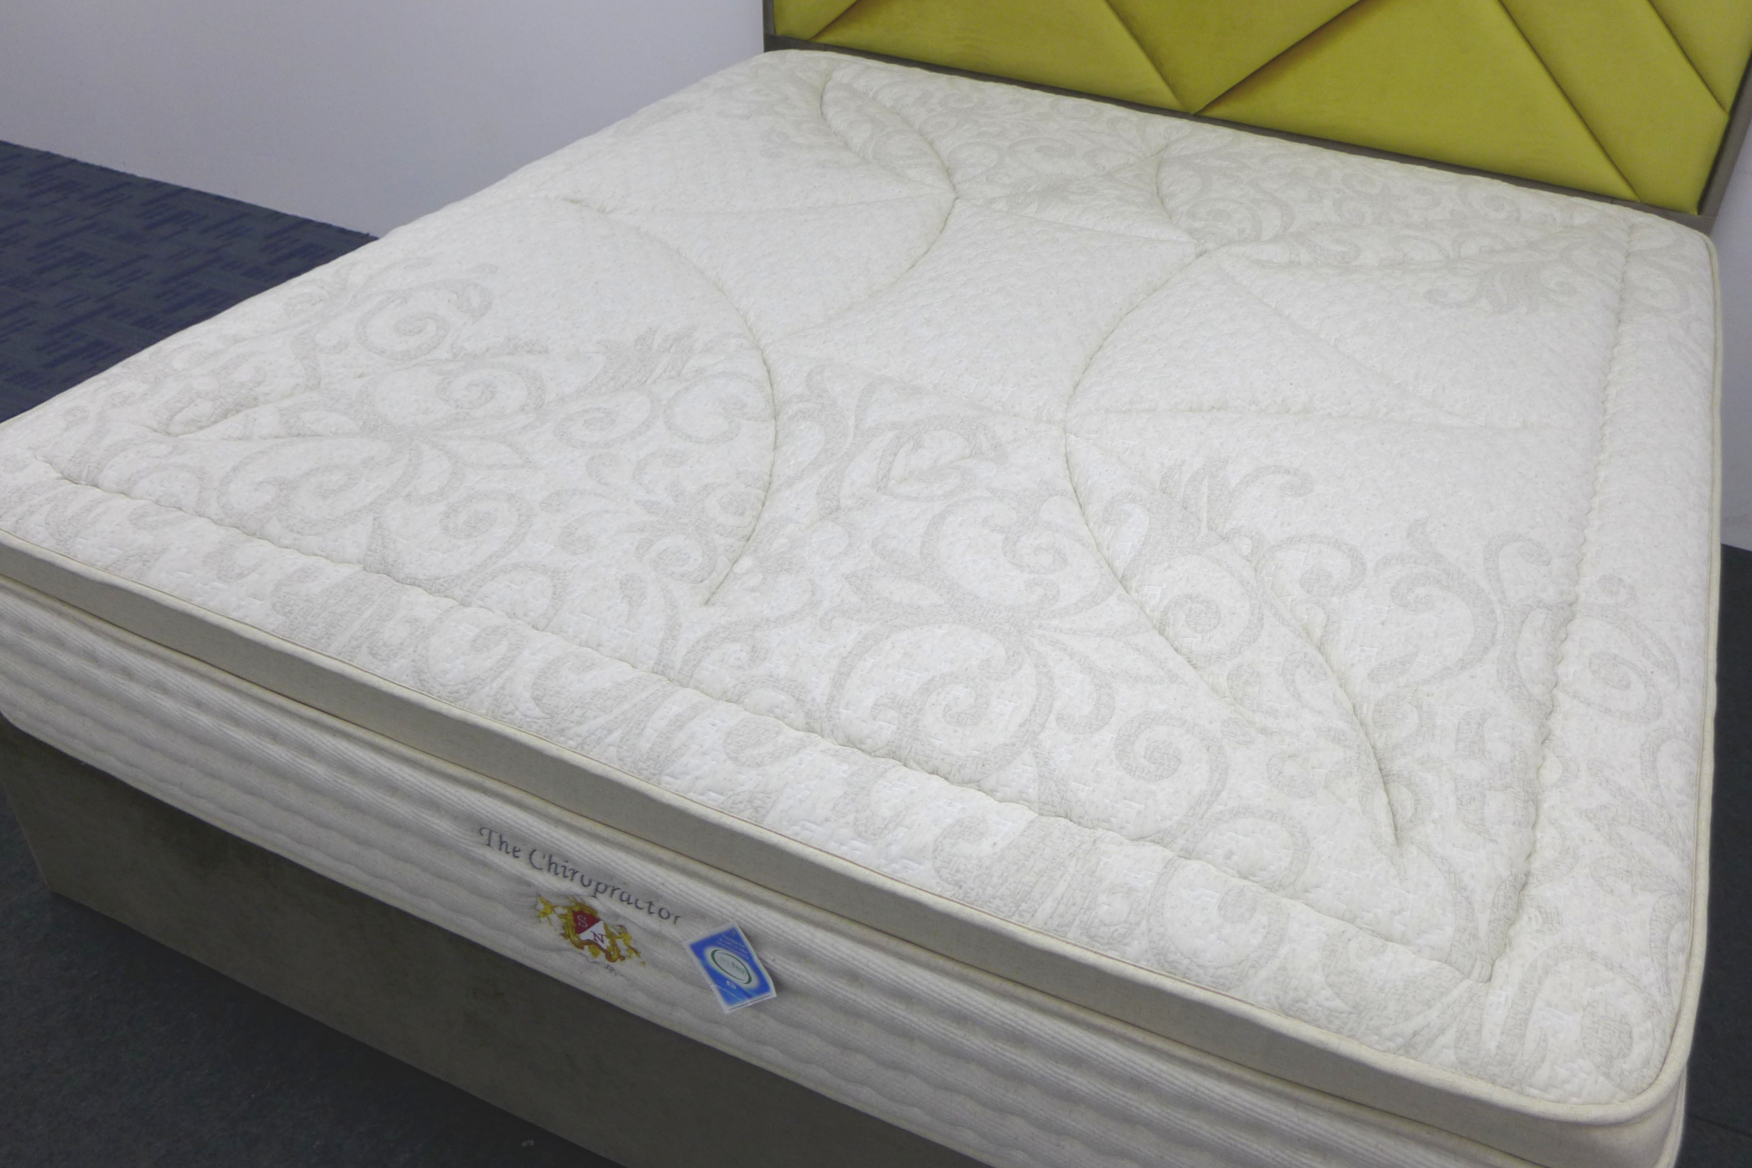 The Chiropractor - SLEEPNIGHT Lifestyle Mattress